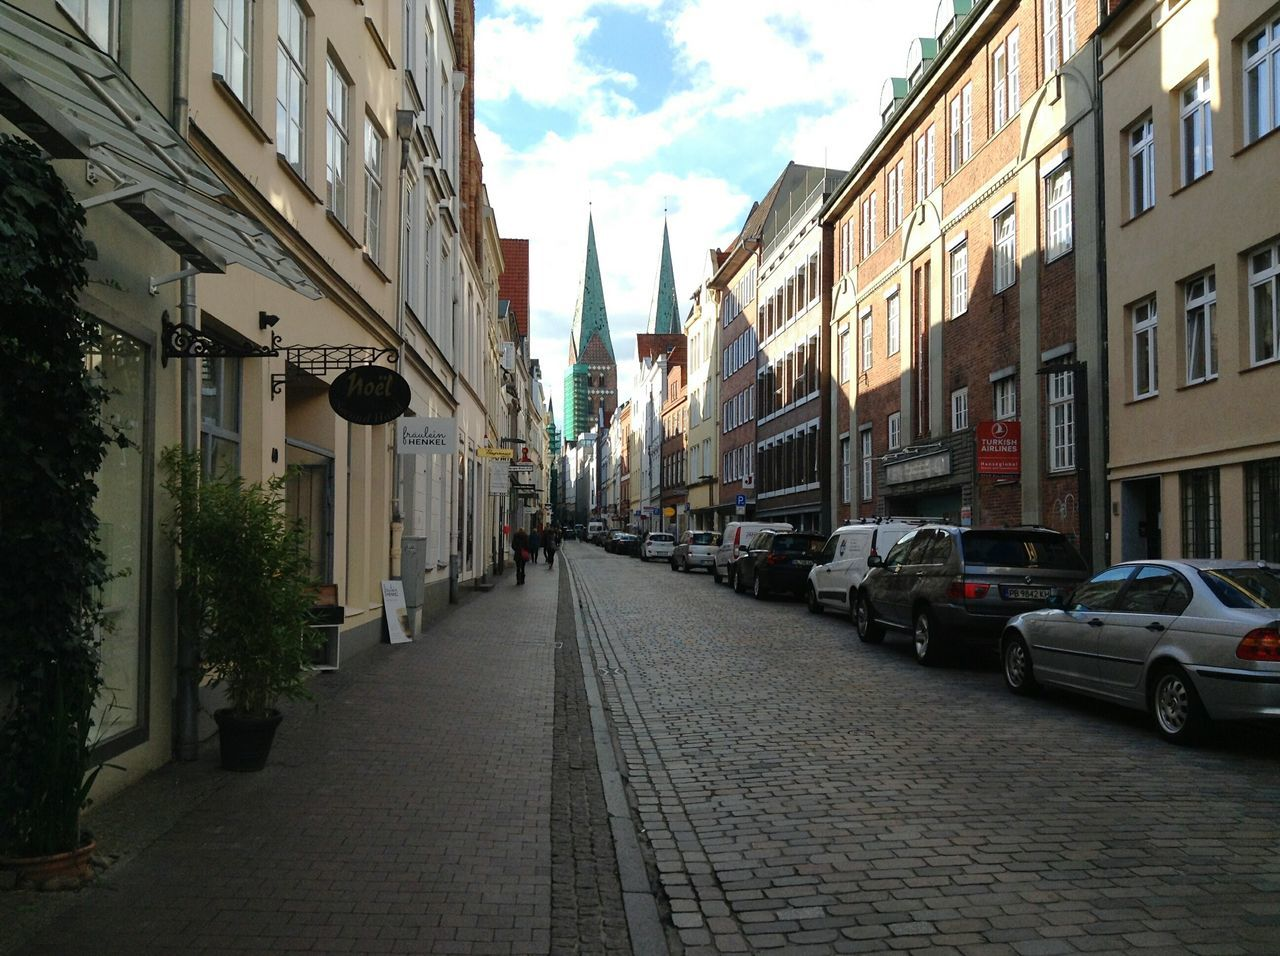 Streets of Lübeck. · Germany Schleswig-Holstein Hansestadt Lübeck Hl Hanseatic City Center Urban Landscape Architecture Street Down The Road  The Way Forward No People Beautiful Day